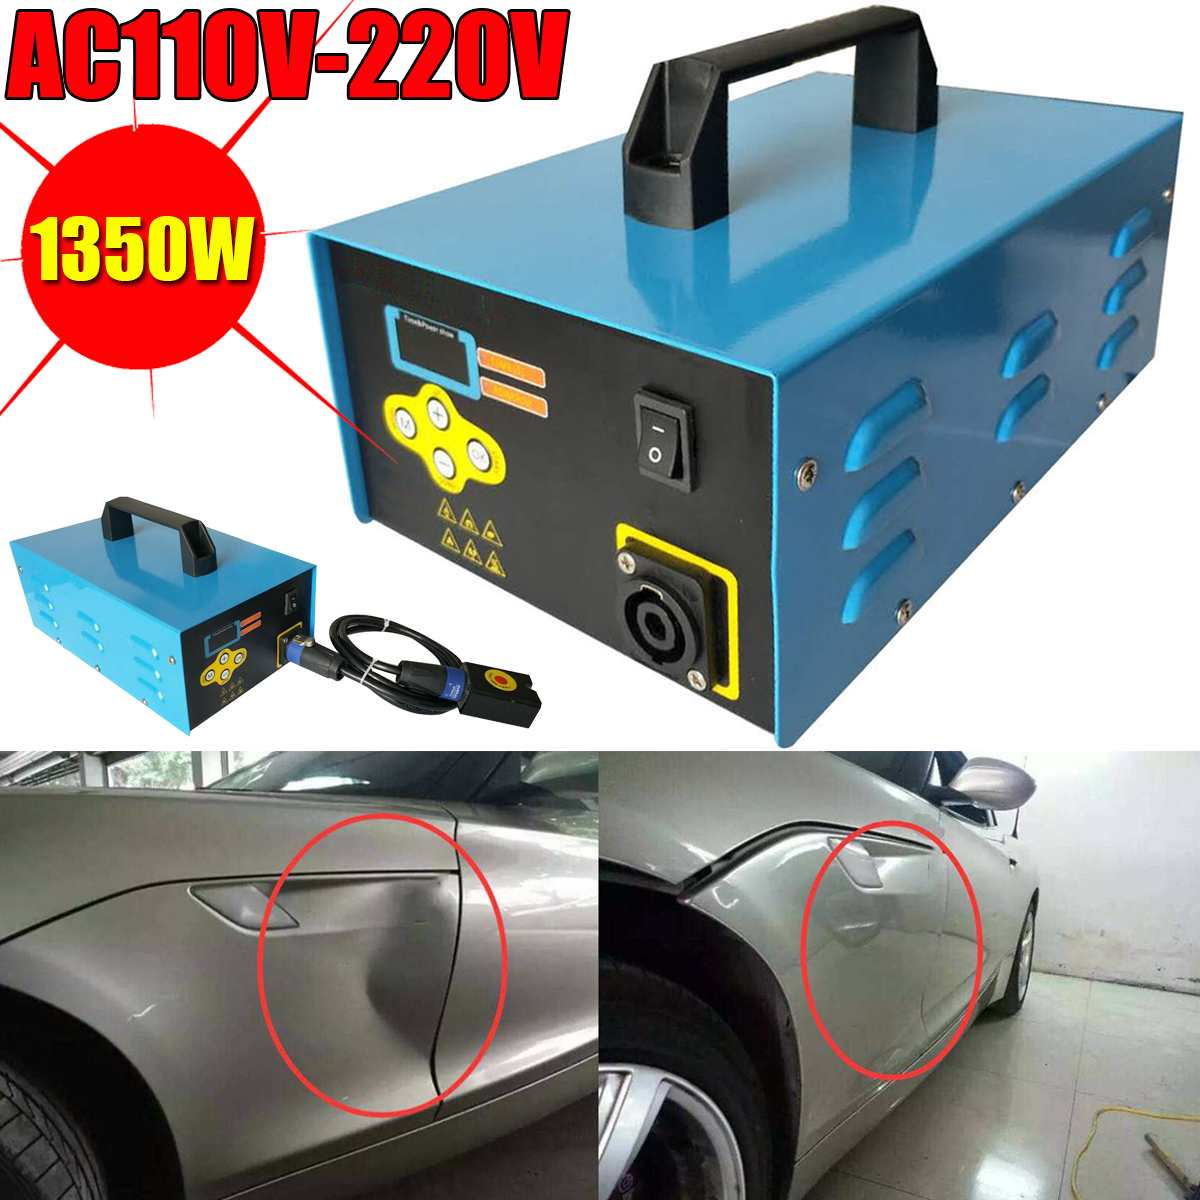 220V/110V 1350W Blue Car Paintless Dent Repair Remover Induction Heater Hot Box Electromagnetic Induction Heater For Repair